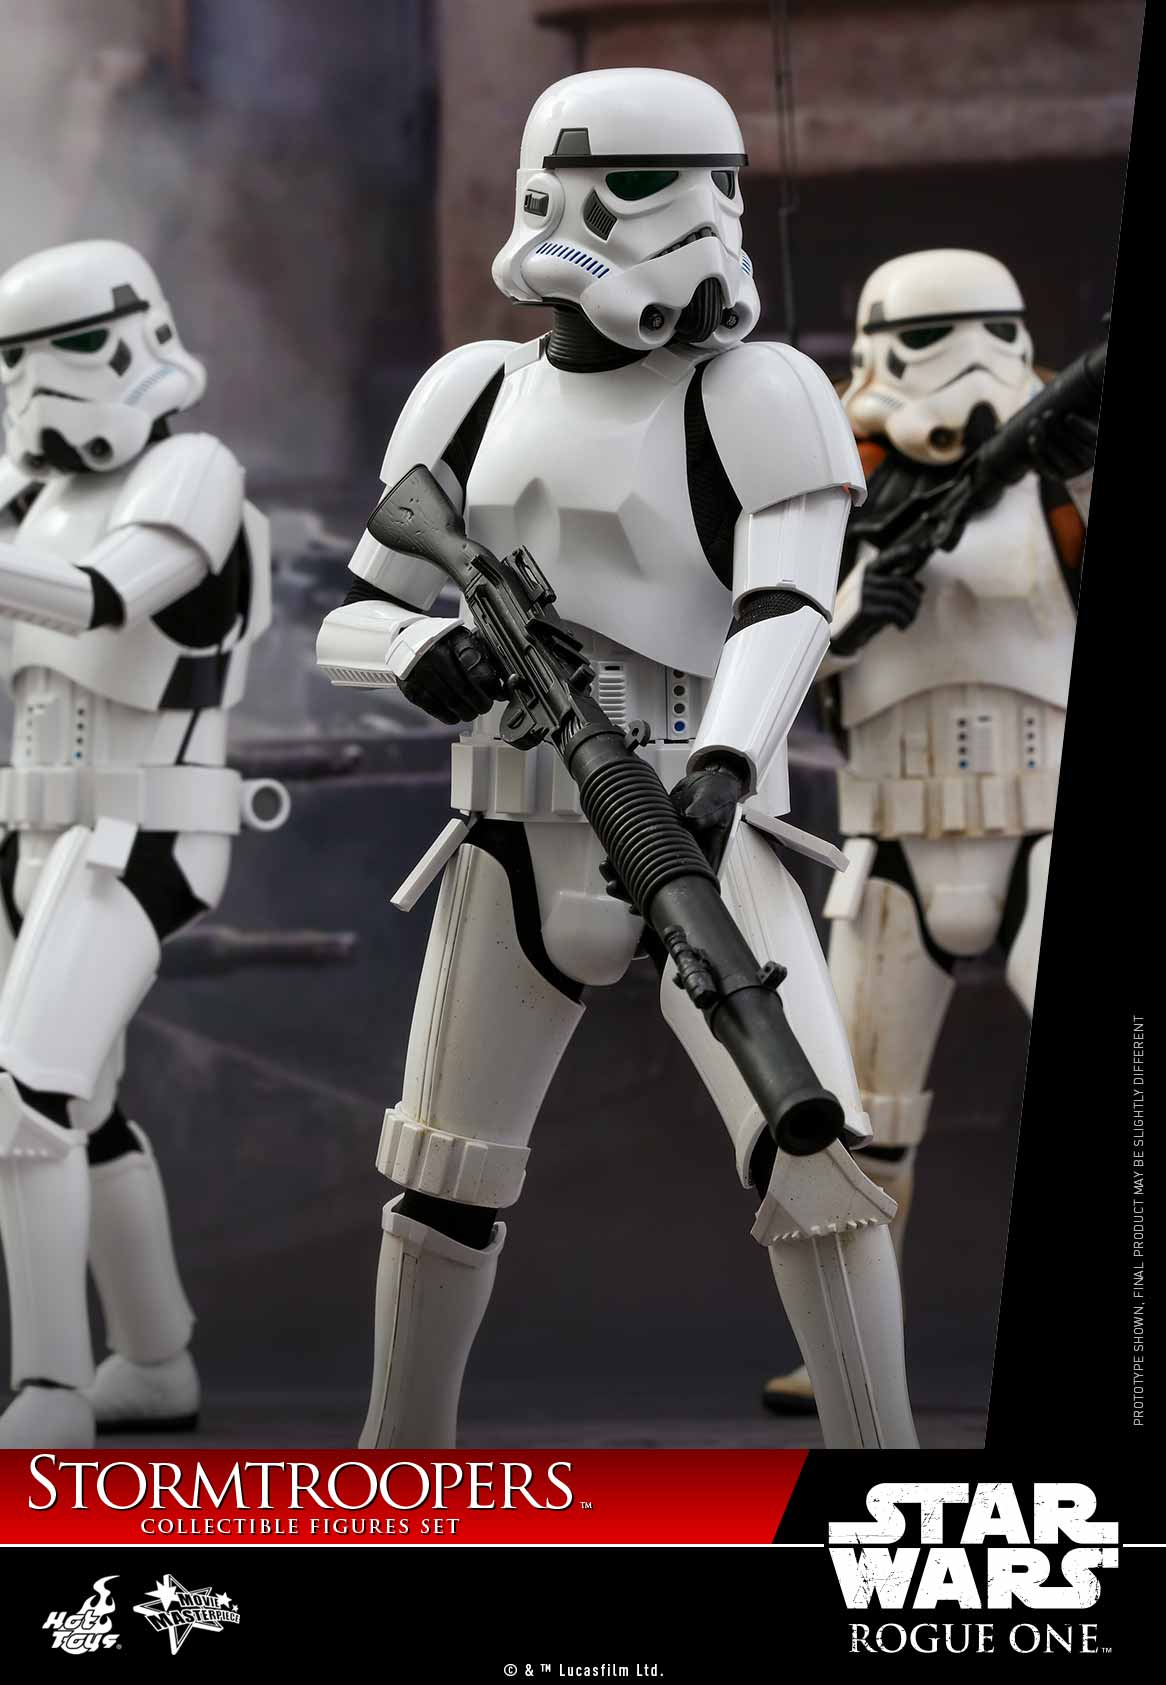 hot-toys-swro-stormtroopers-collectible-figures-set_pr10